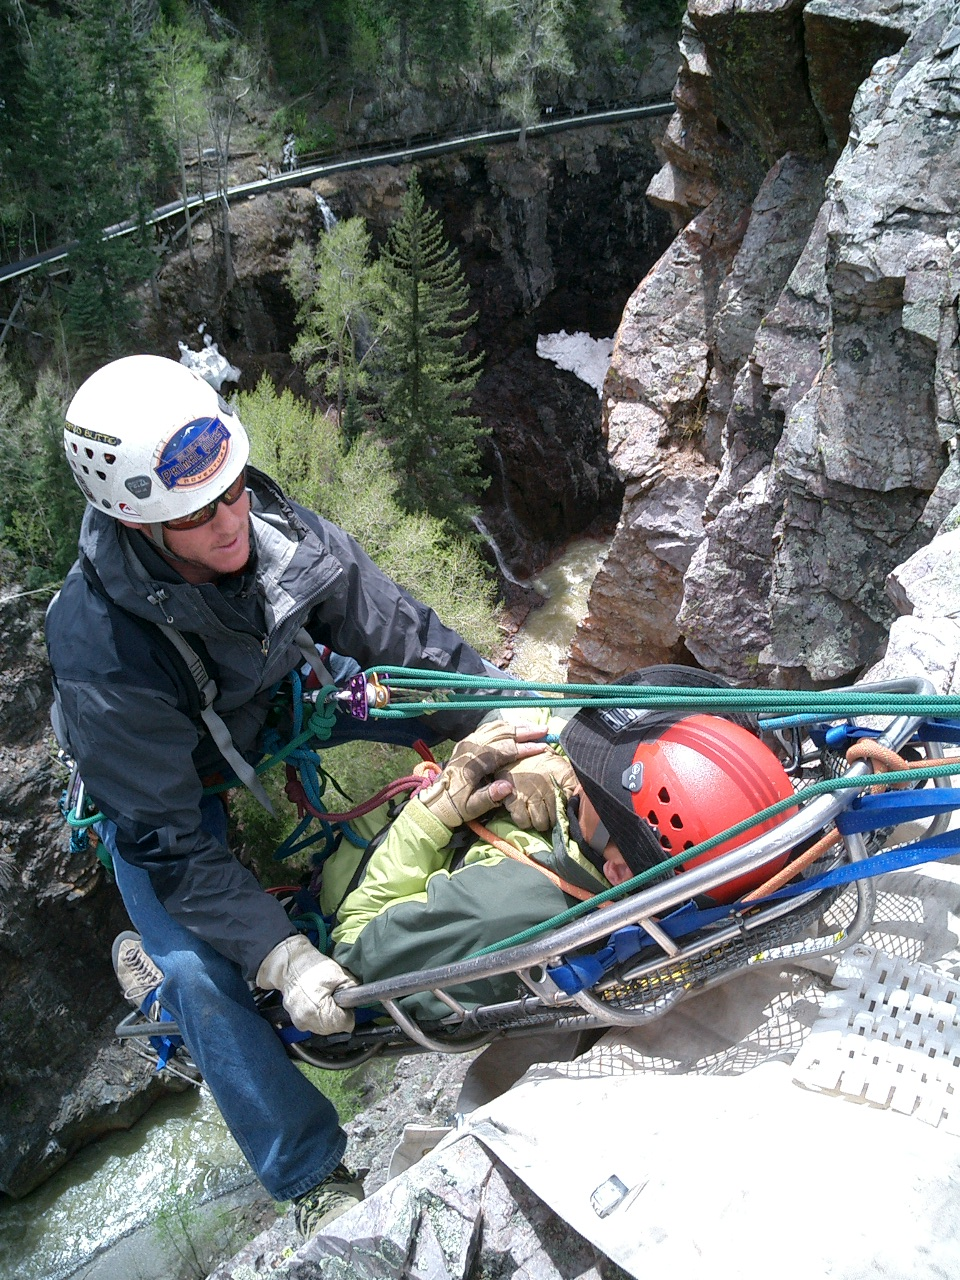 Rigging for Rescue Specialty rope rescue techniques